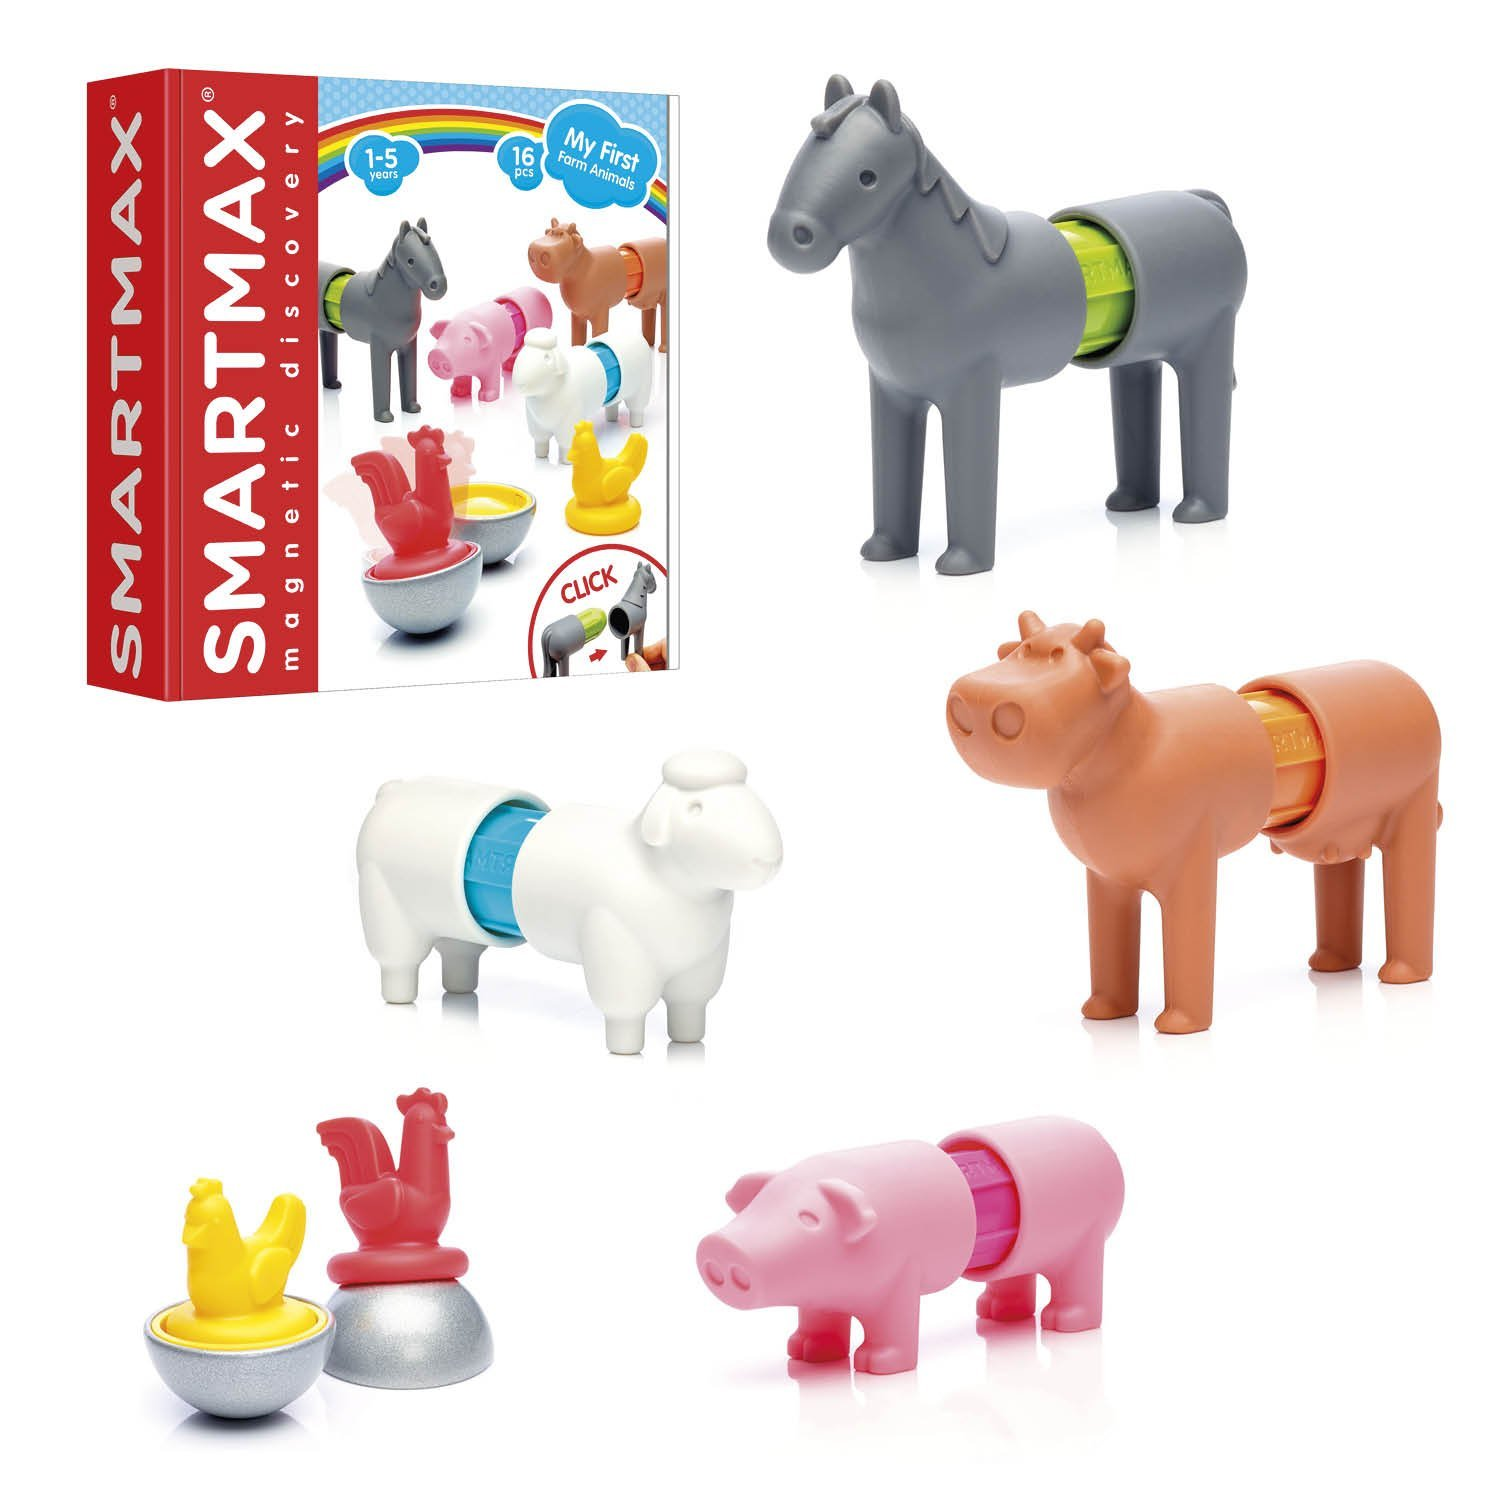 SmartMax My First Farm Animals STEM Magnetic Discovery Building Set with Soft Animals for Ages 1-5